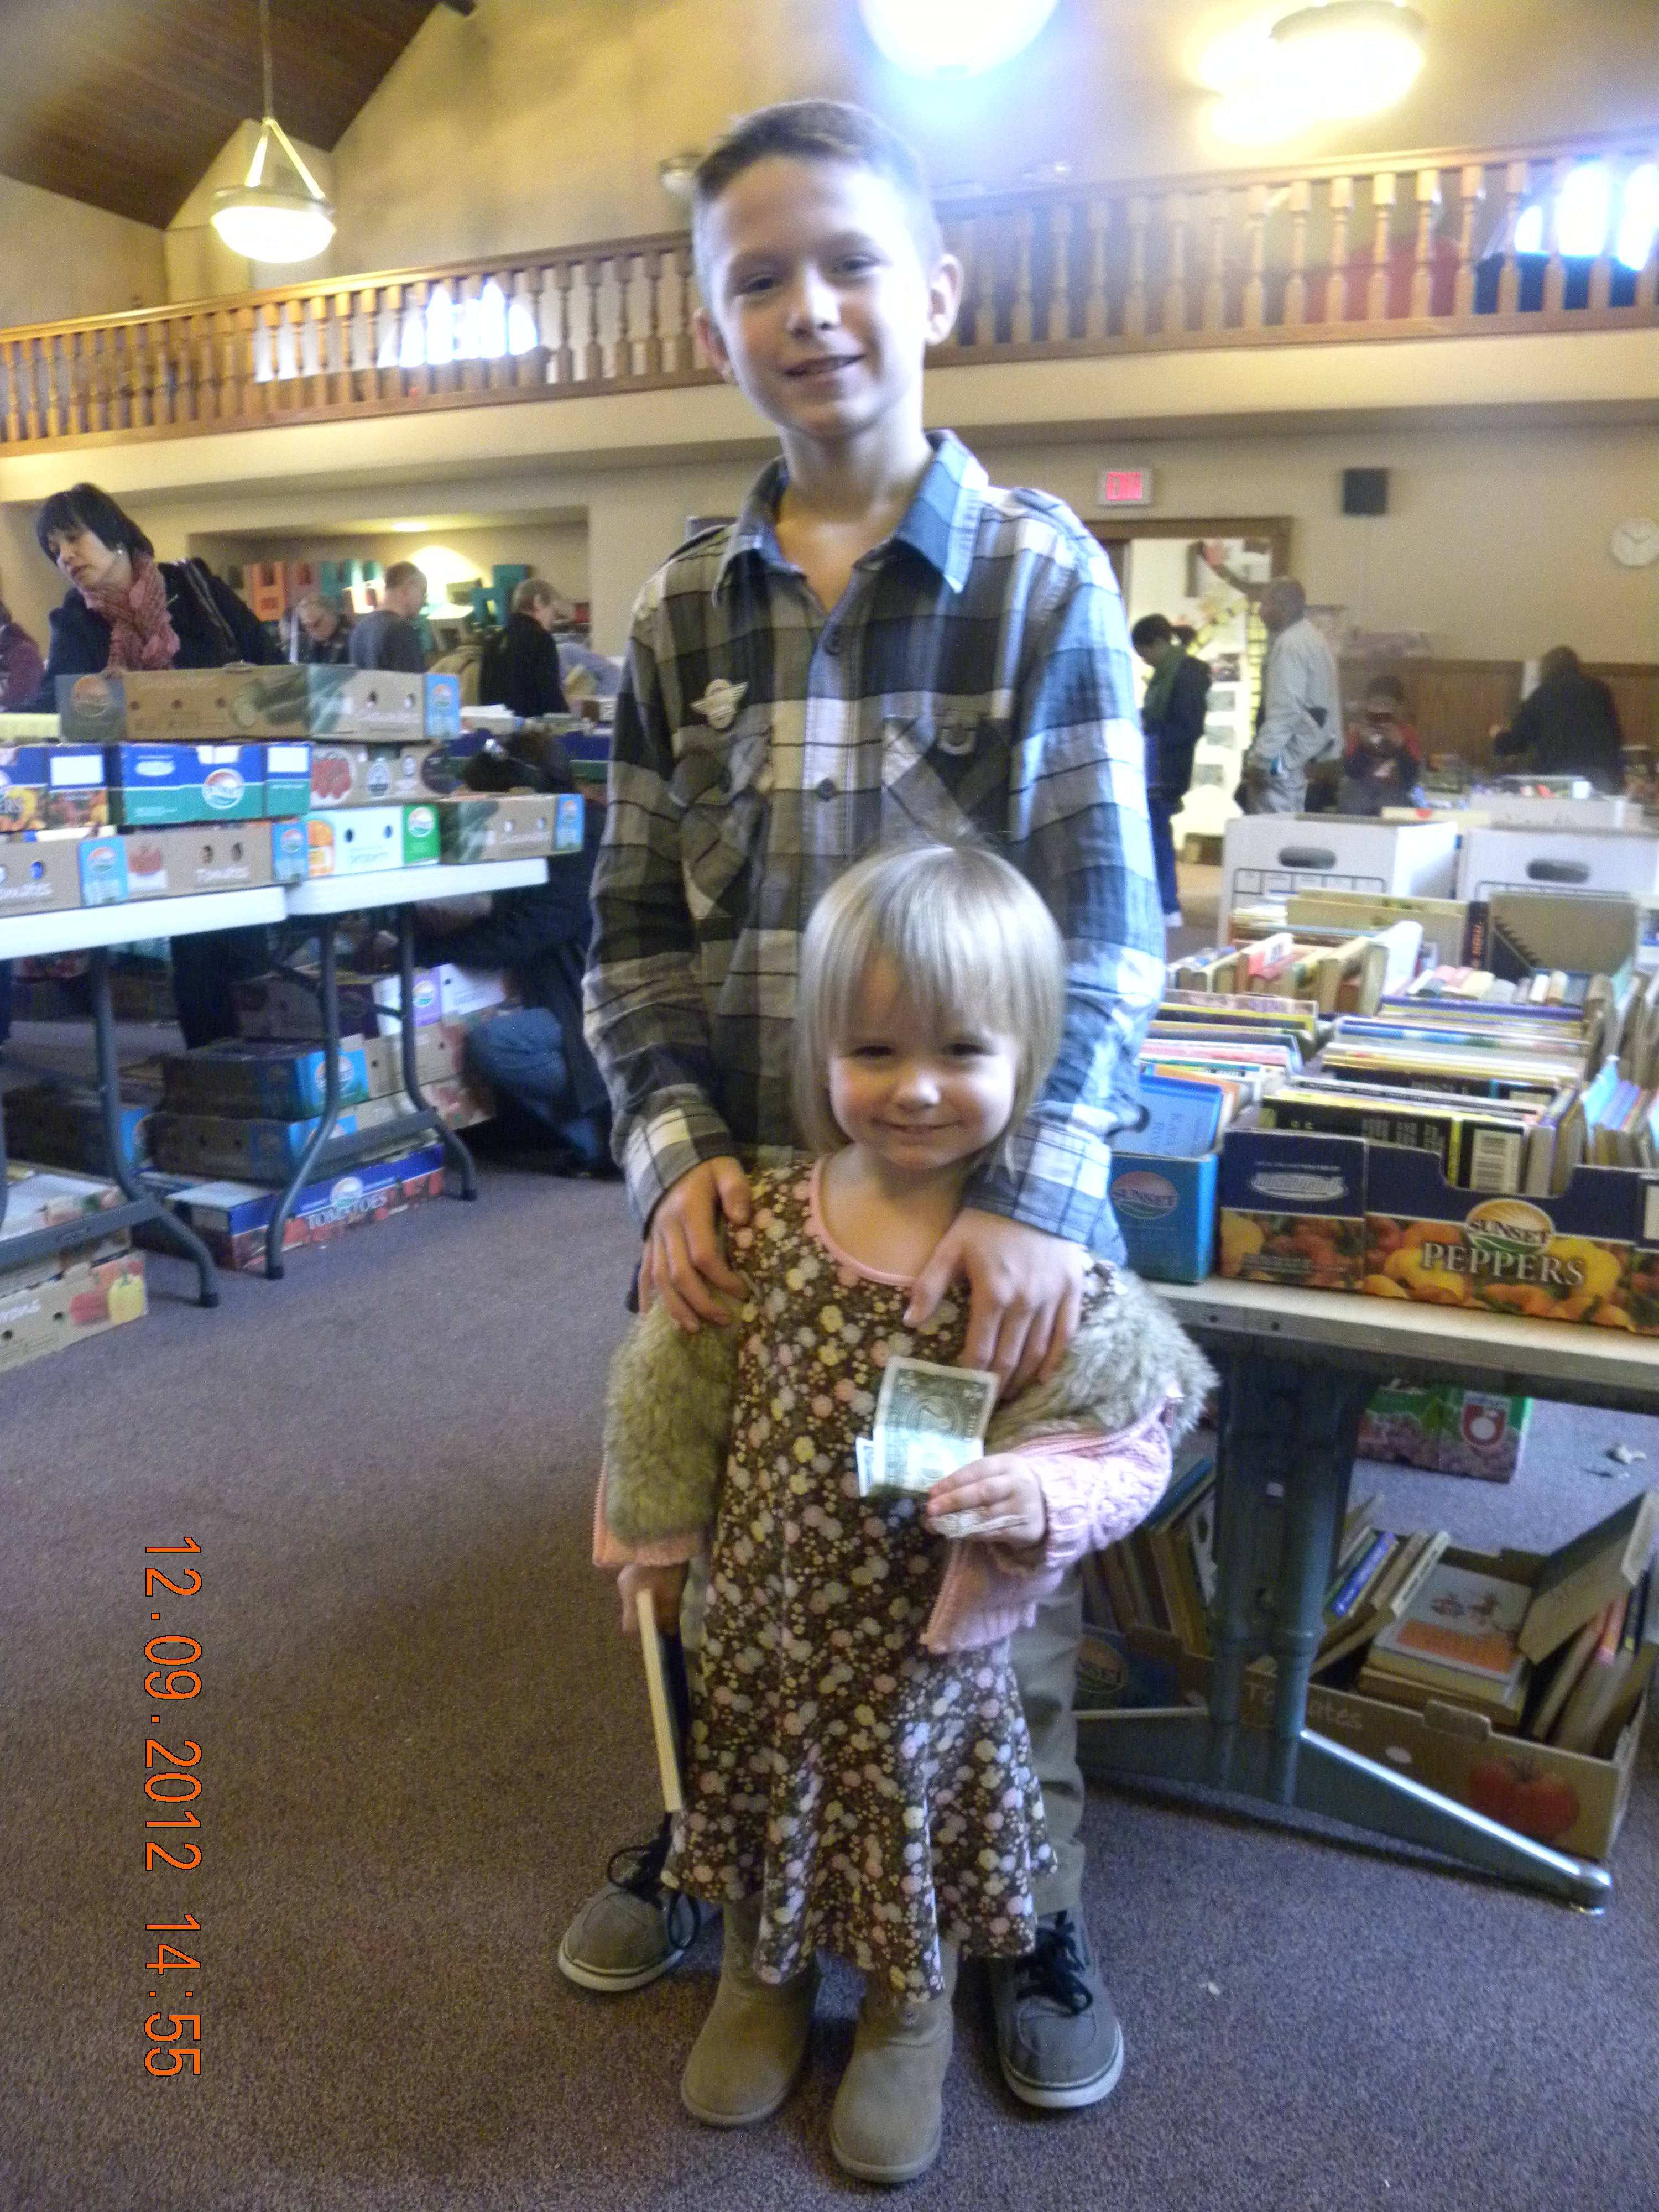 781098224c151c03d167_Book_Sale1_2012_Joshua_10___Julia_3__Freehold.JPG